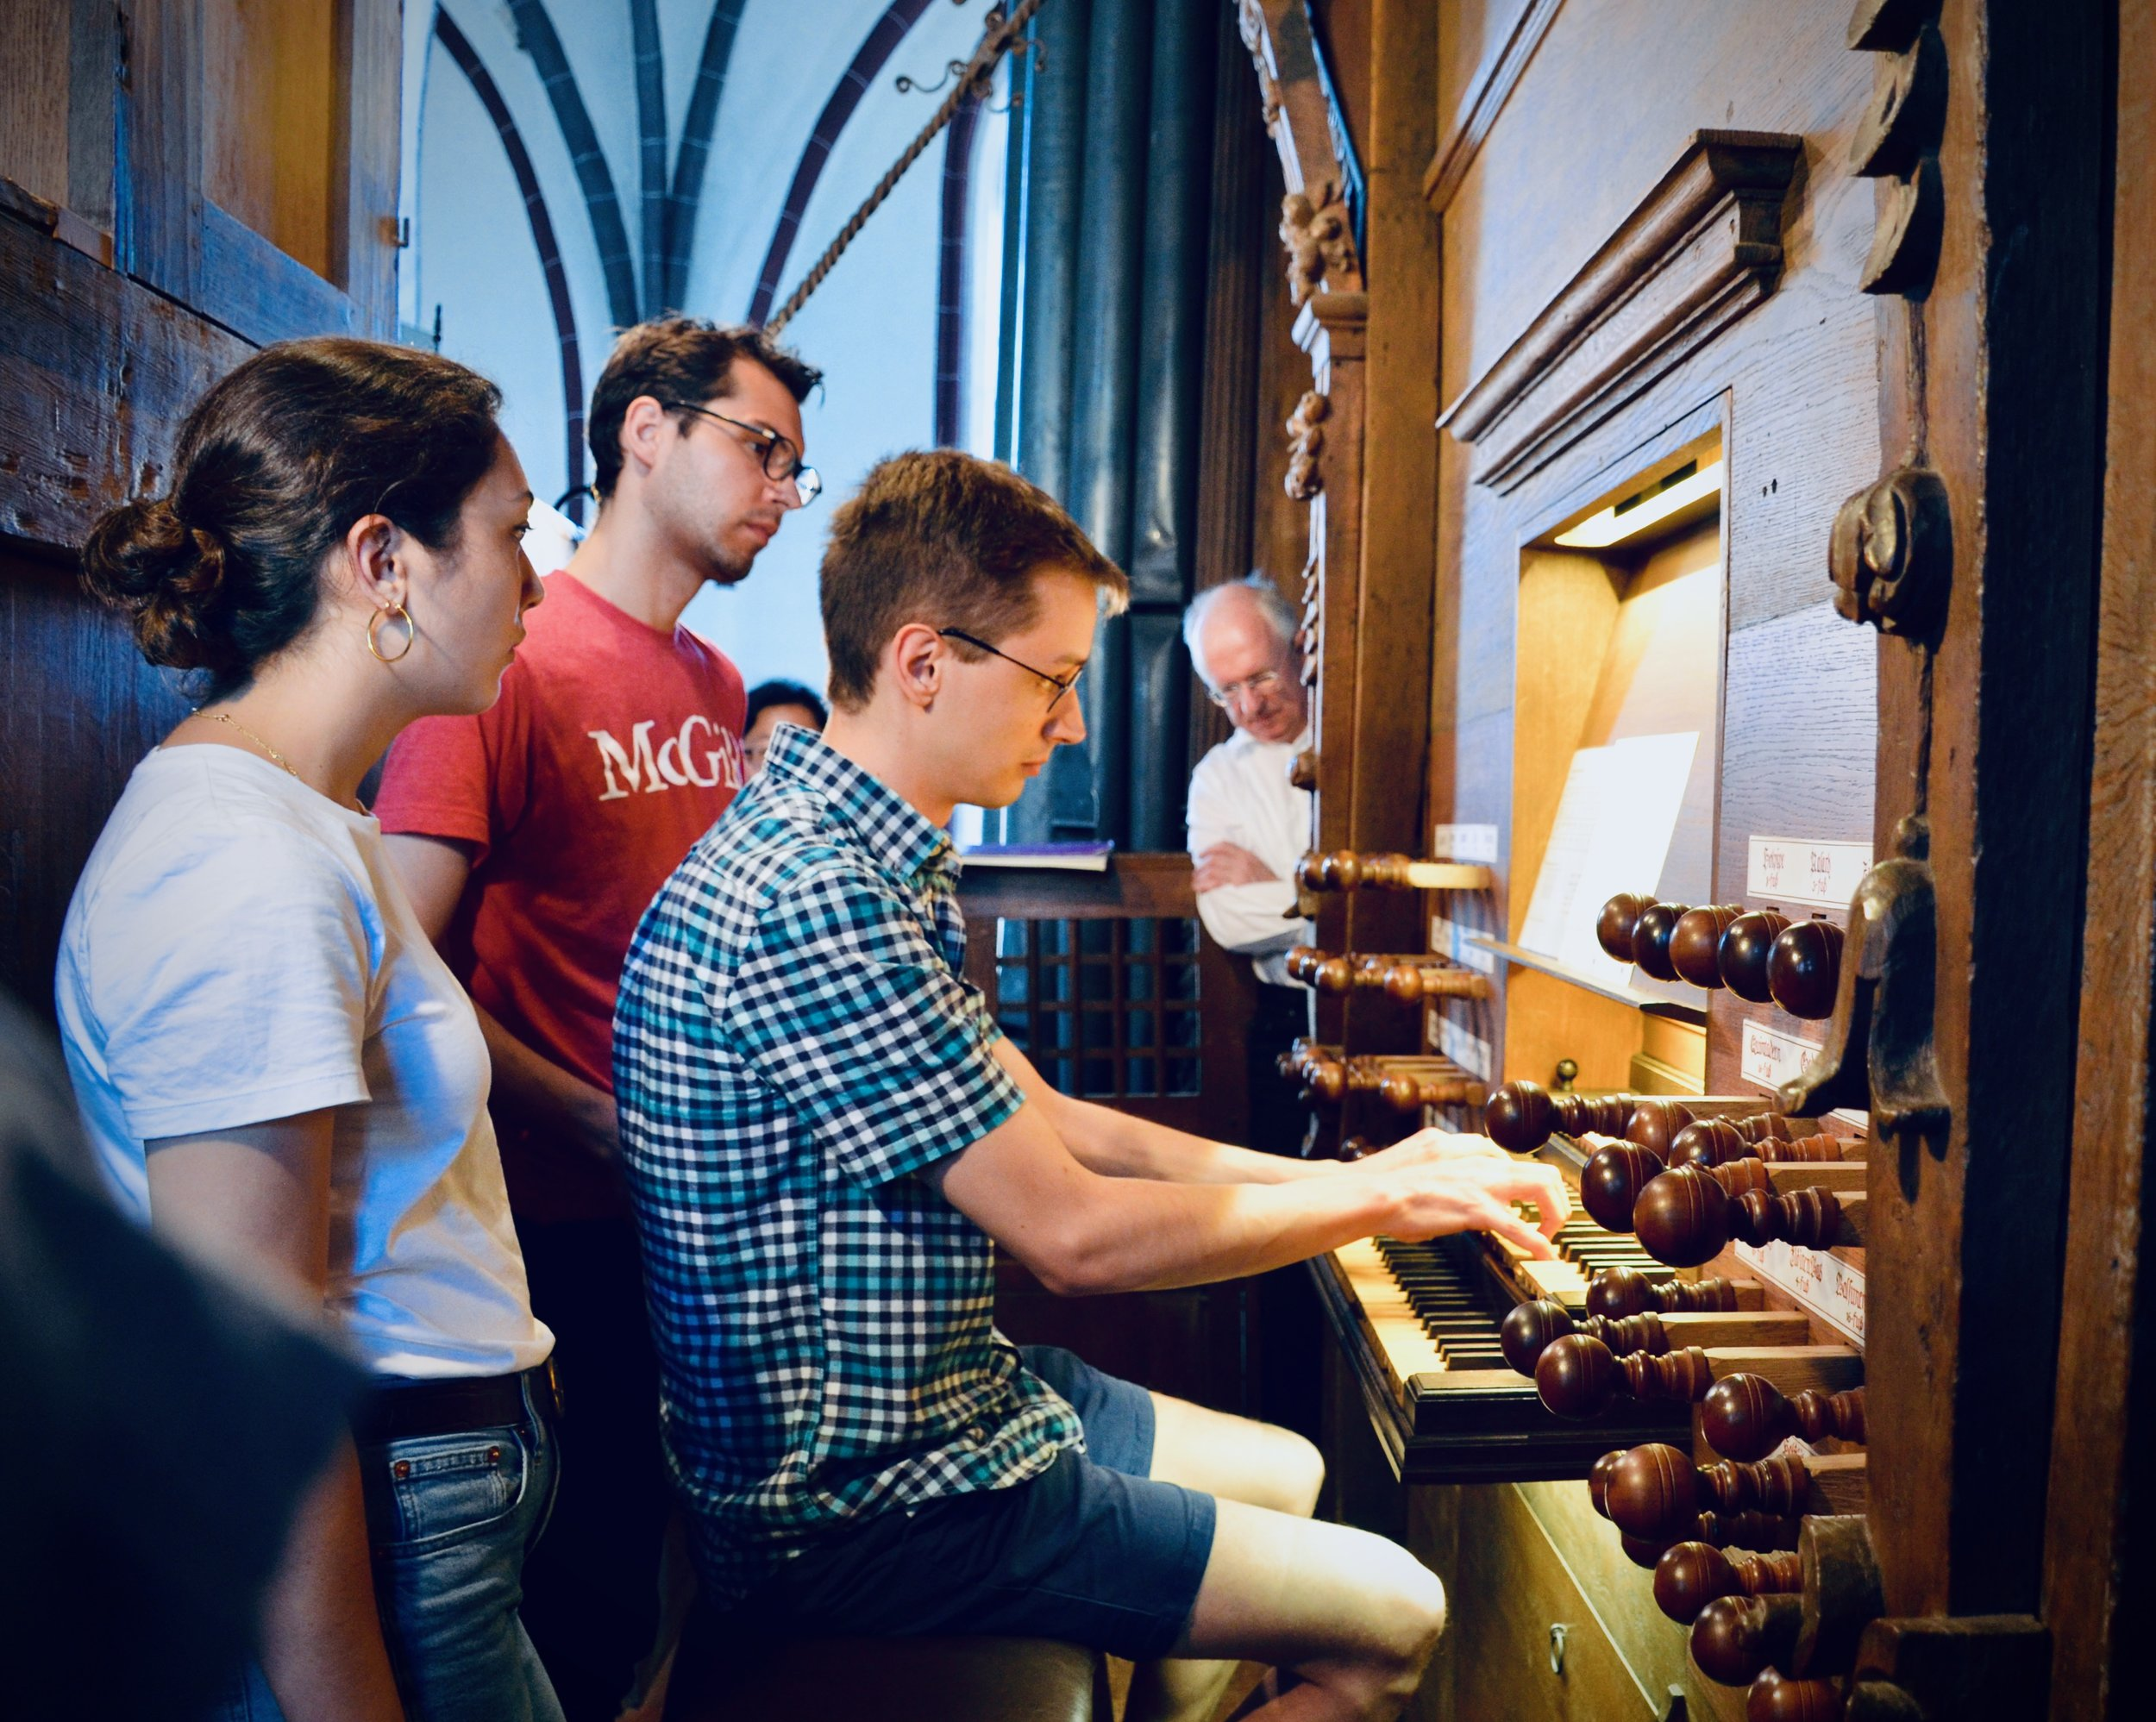 Alex Ross plays the 1624 Scherer Organ, St. Stephanskirche, Tangermünde.